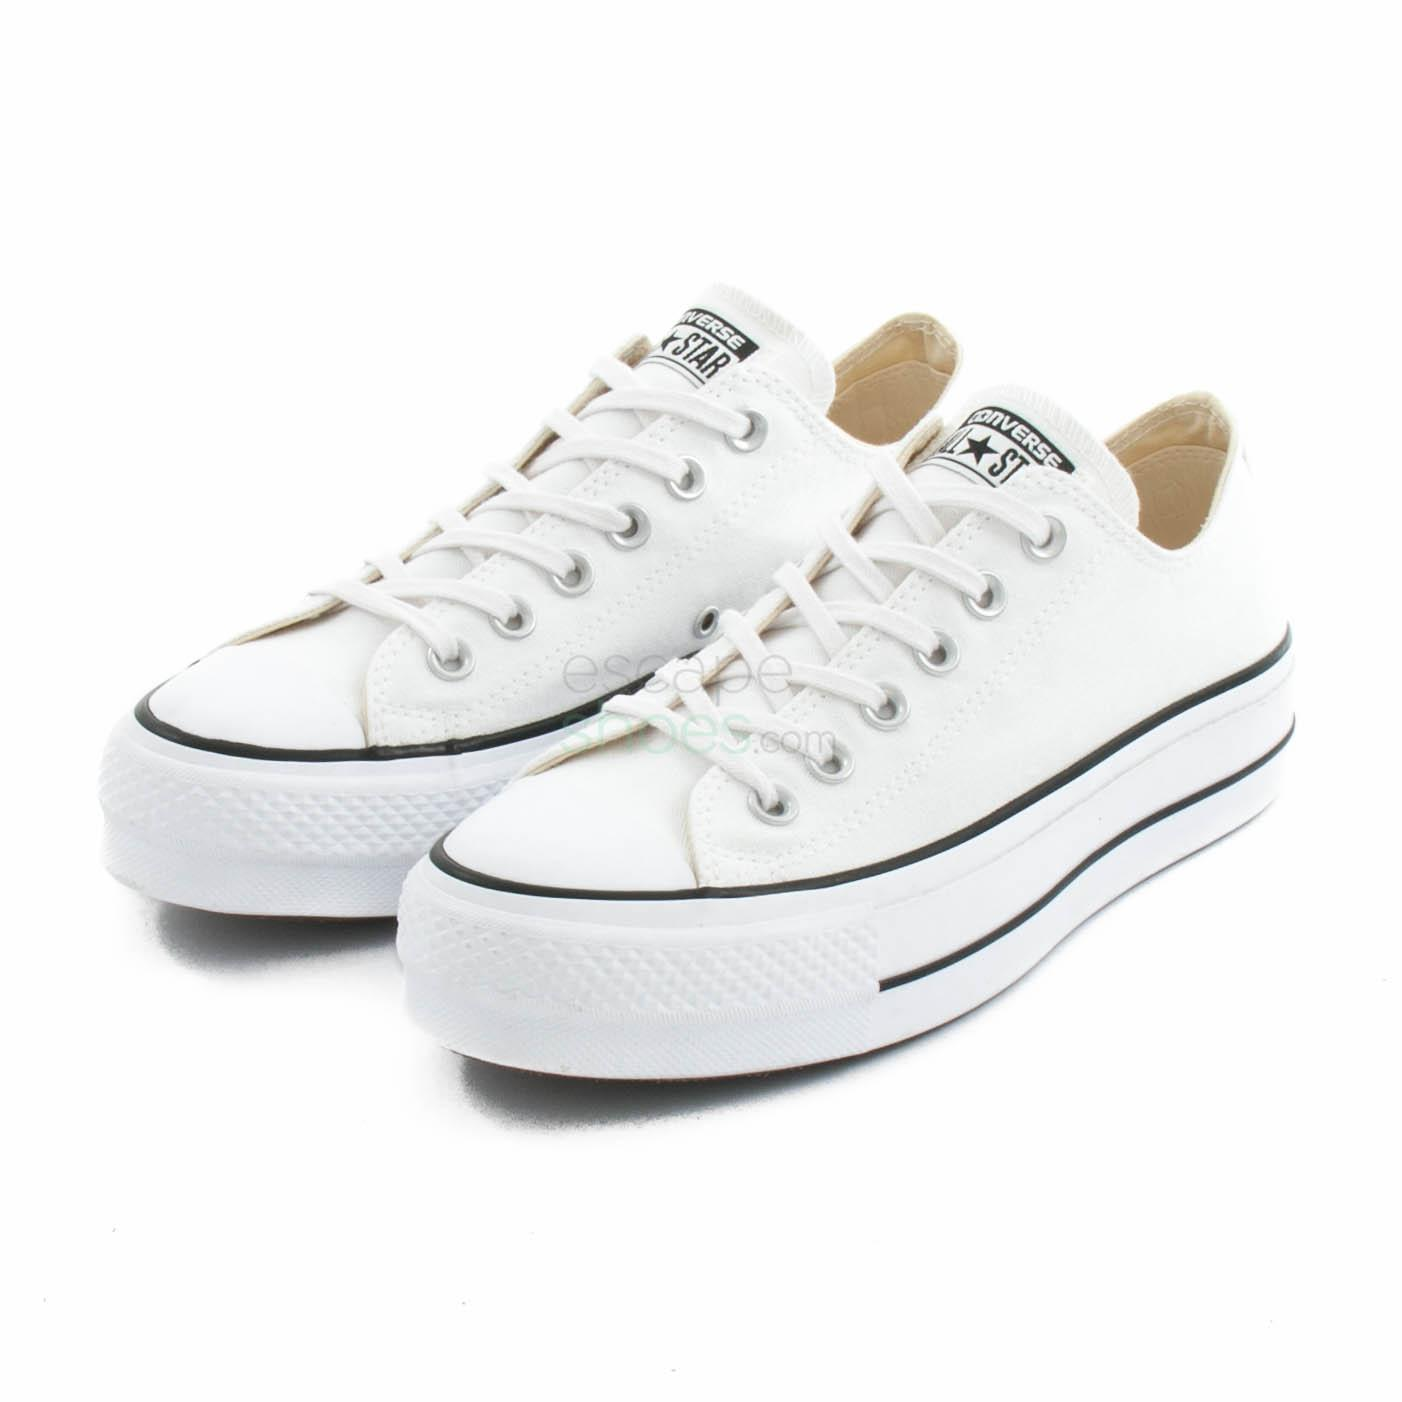 384d9c44c8cb Buy your Sneakers CONVERSE Chuck Taylor All Star Lift Clean 560251C ...